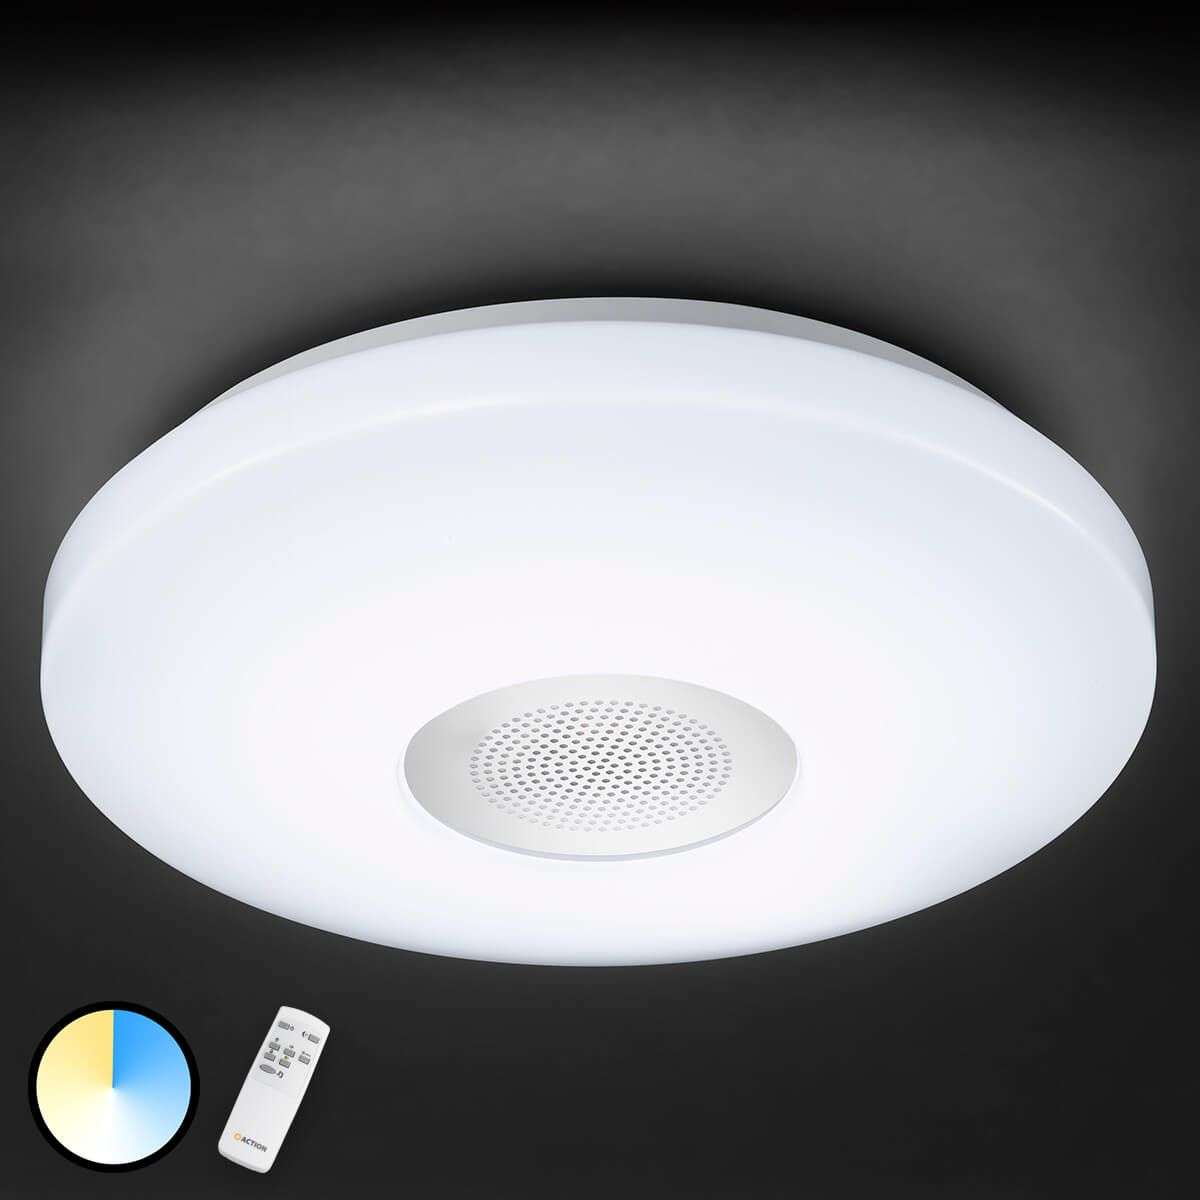 Zon ceiling light with bluetooth speaker for Led light bulb with built in bluetooth speaker